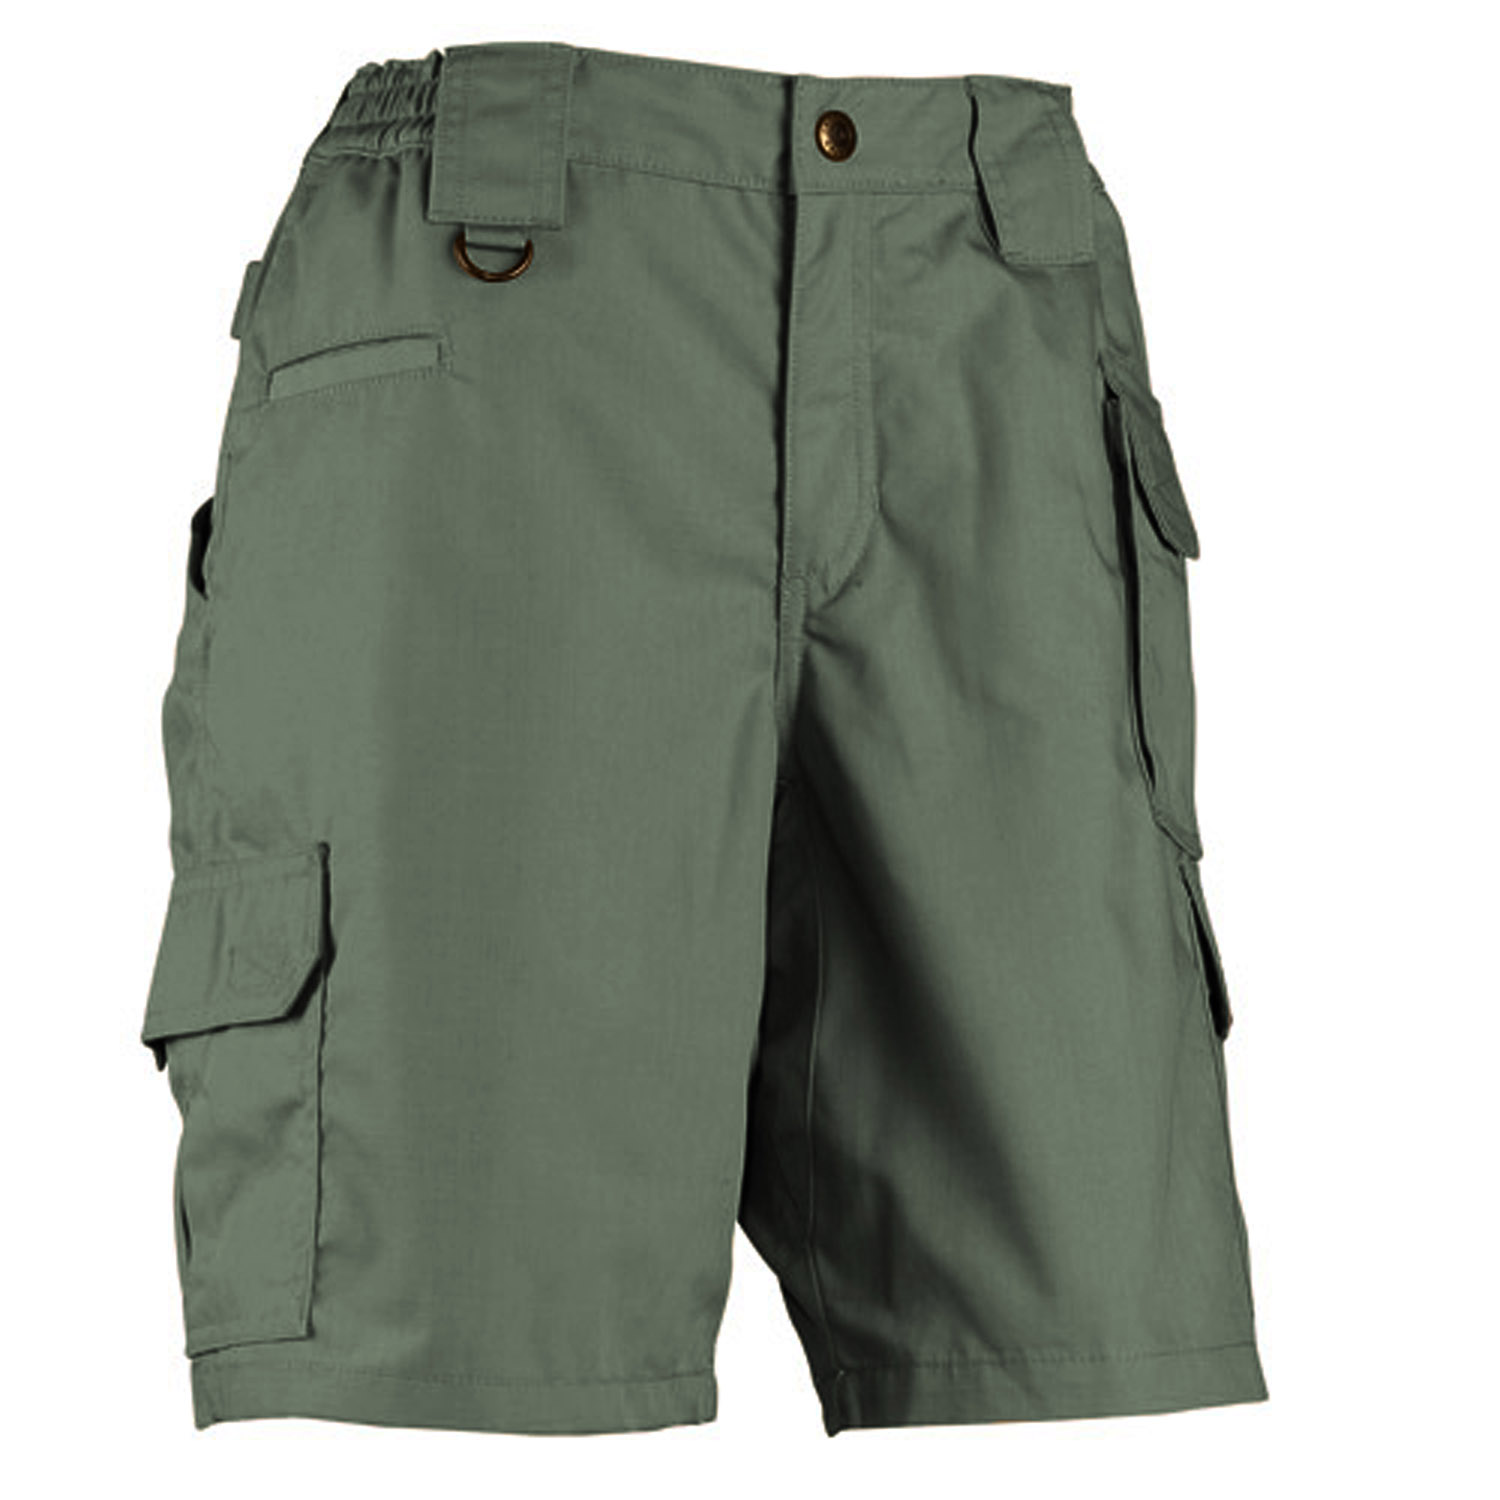 aef78c5466717 5.11 Tactical TacLite Pro Women s Ripstop Shorts